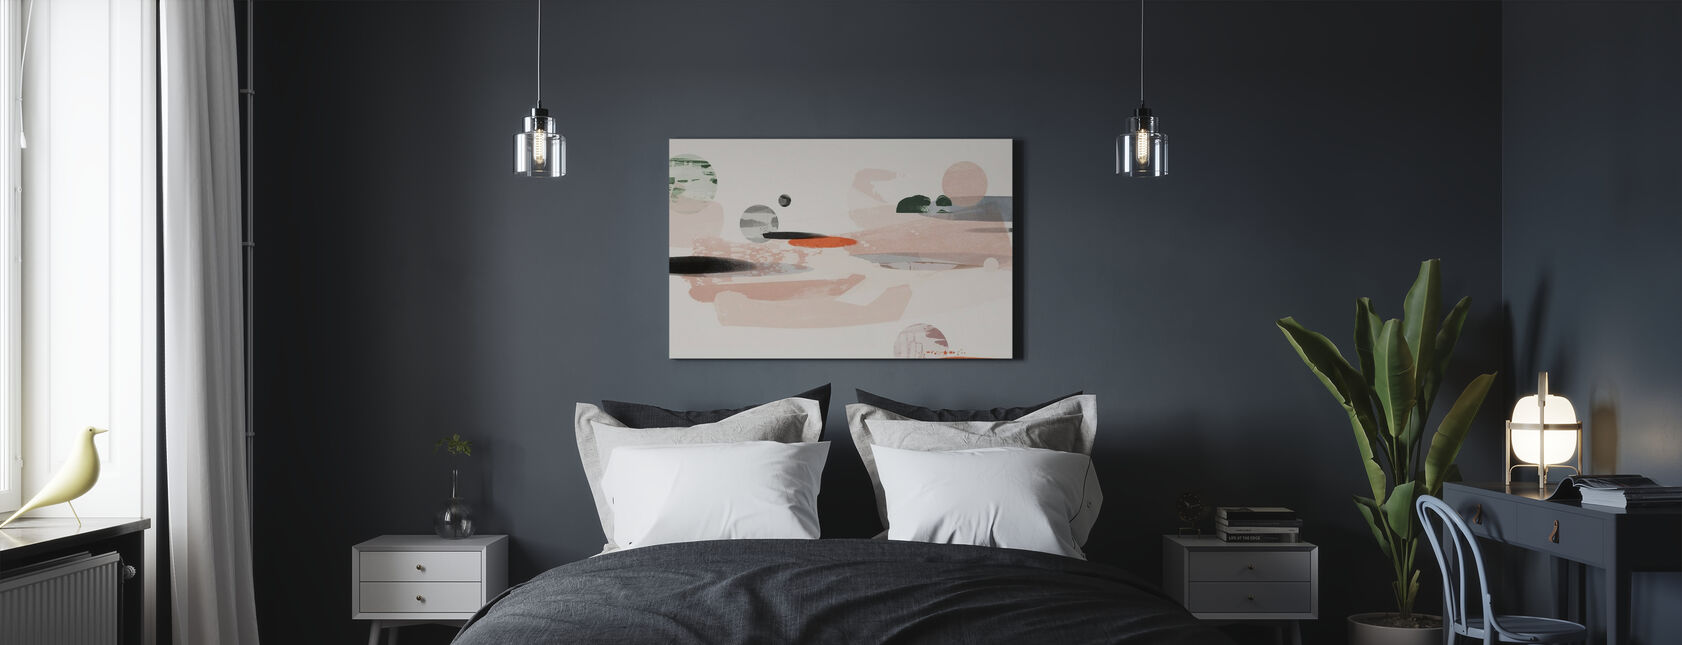 Cosmic Abstraction - Canvas print - Bedroom